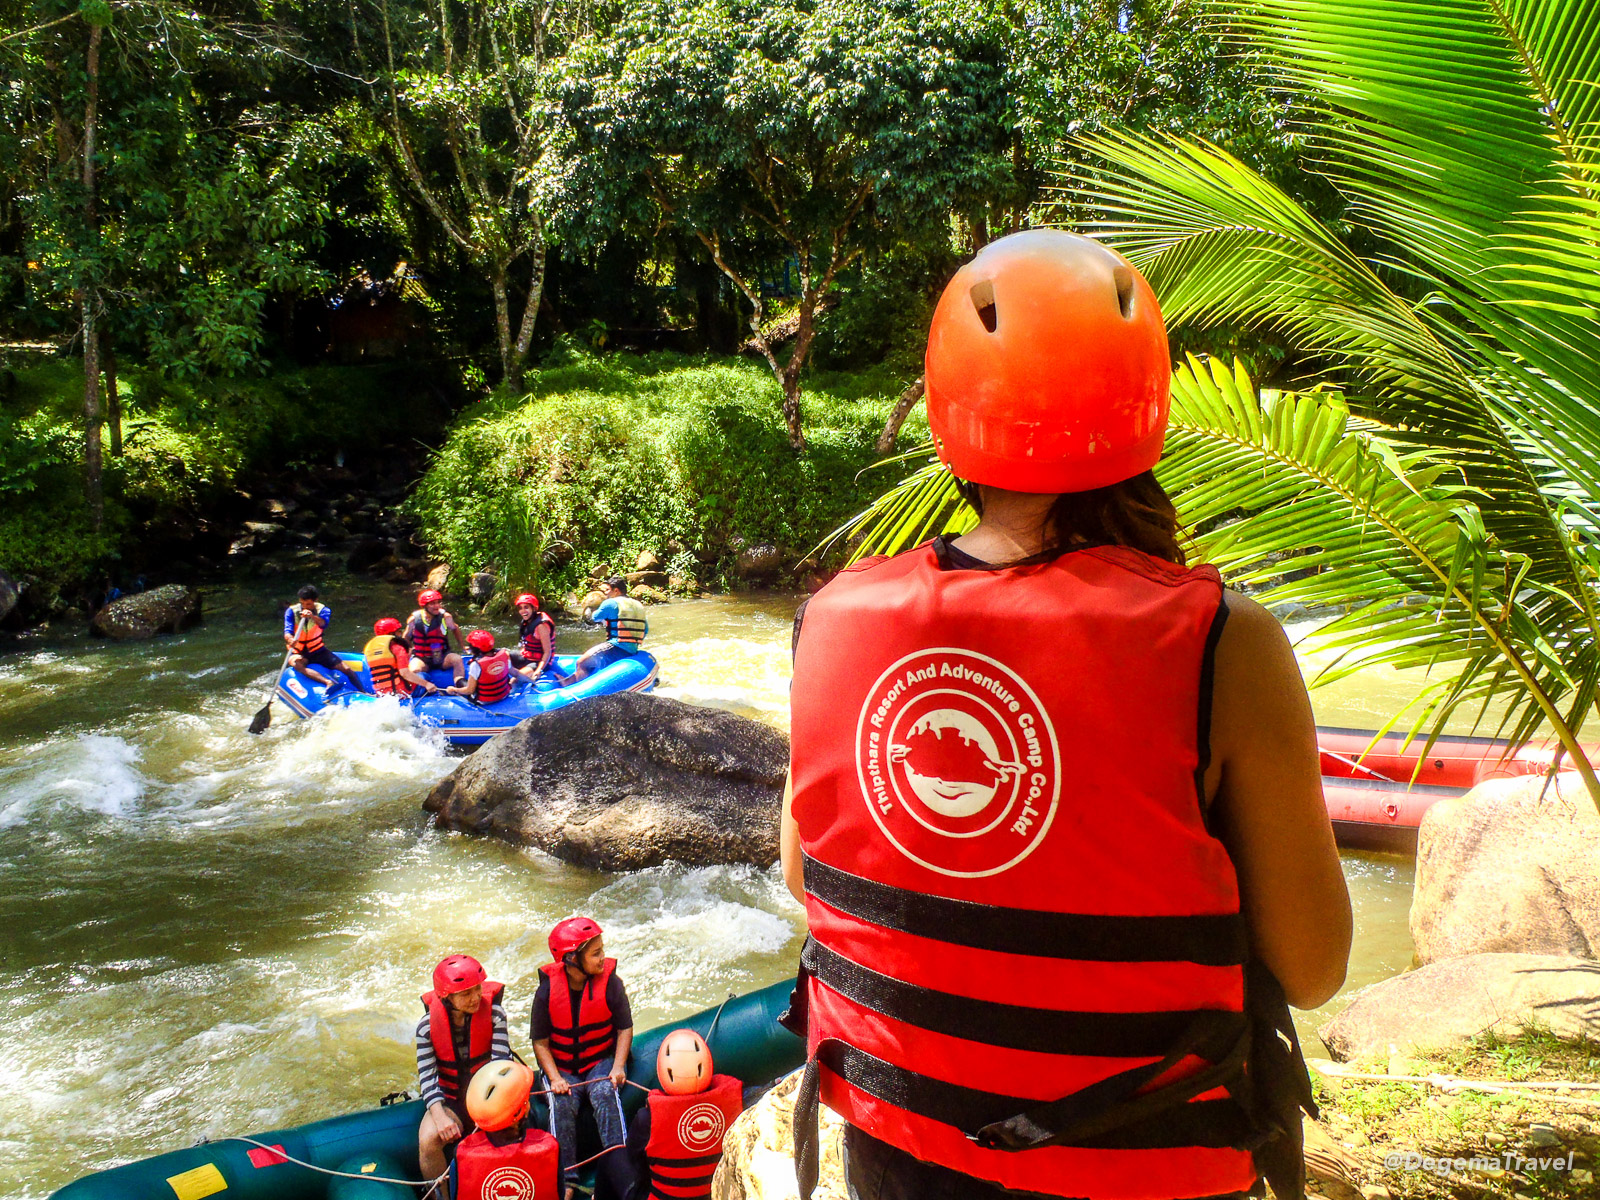 Rafting in Ton Pariwat Wildlife Sanctuary, Thailand